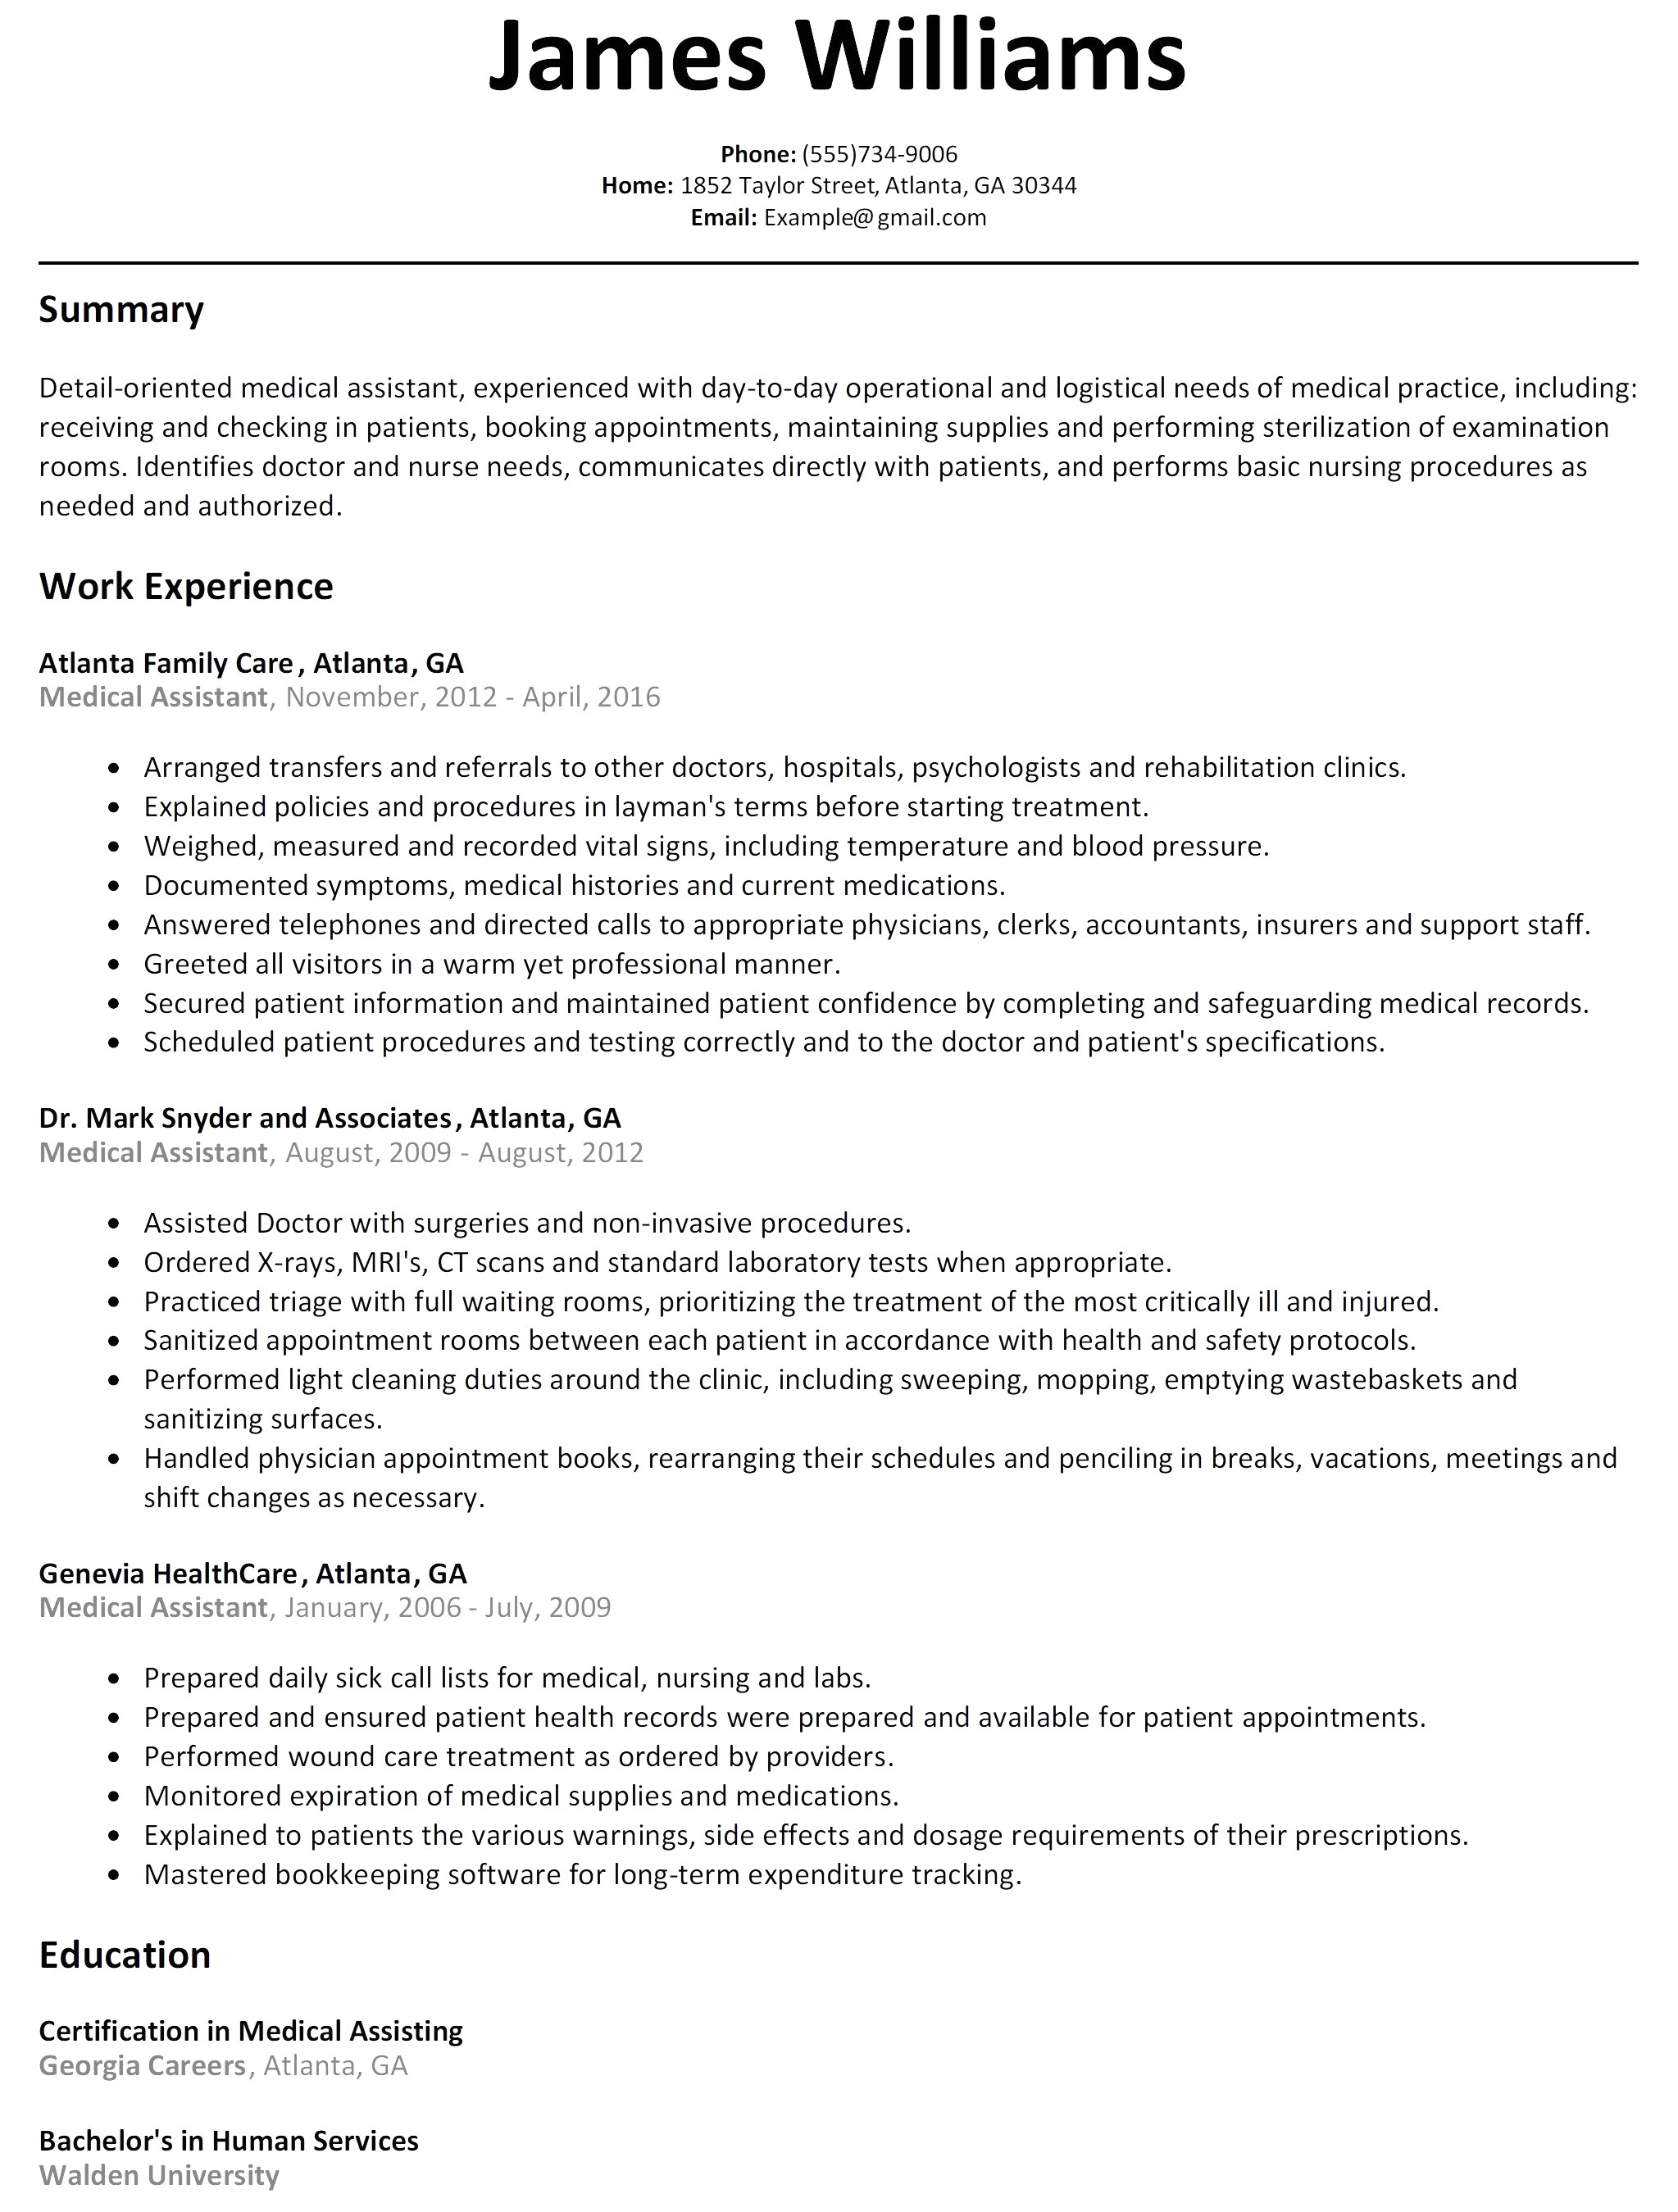 Best Administrative assistant Resume - 45 Design Medical Administrative assistant Resume